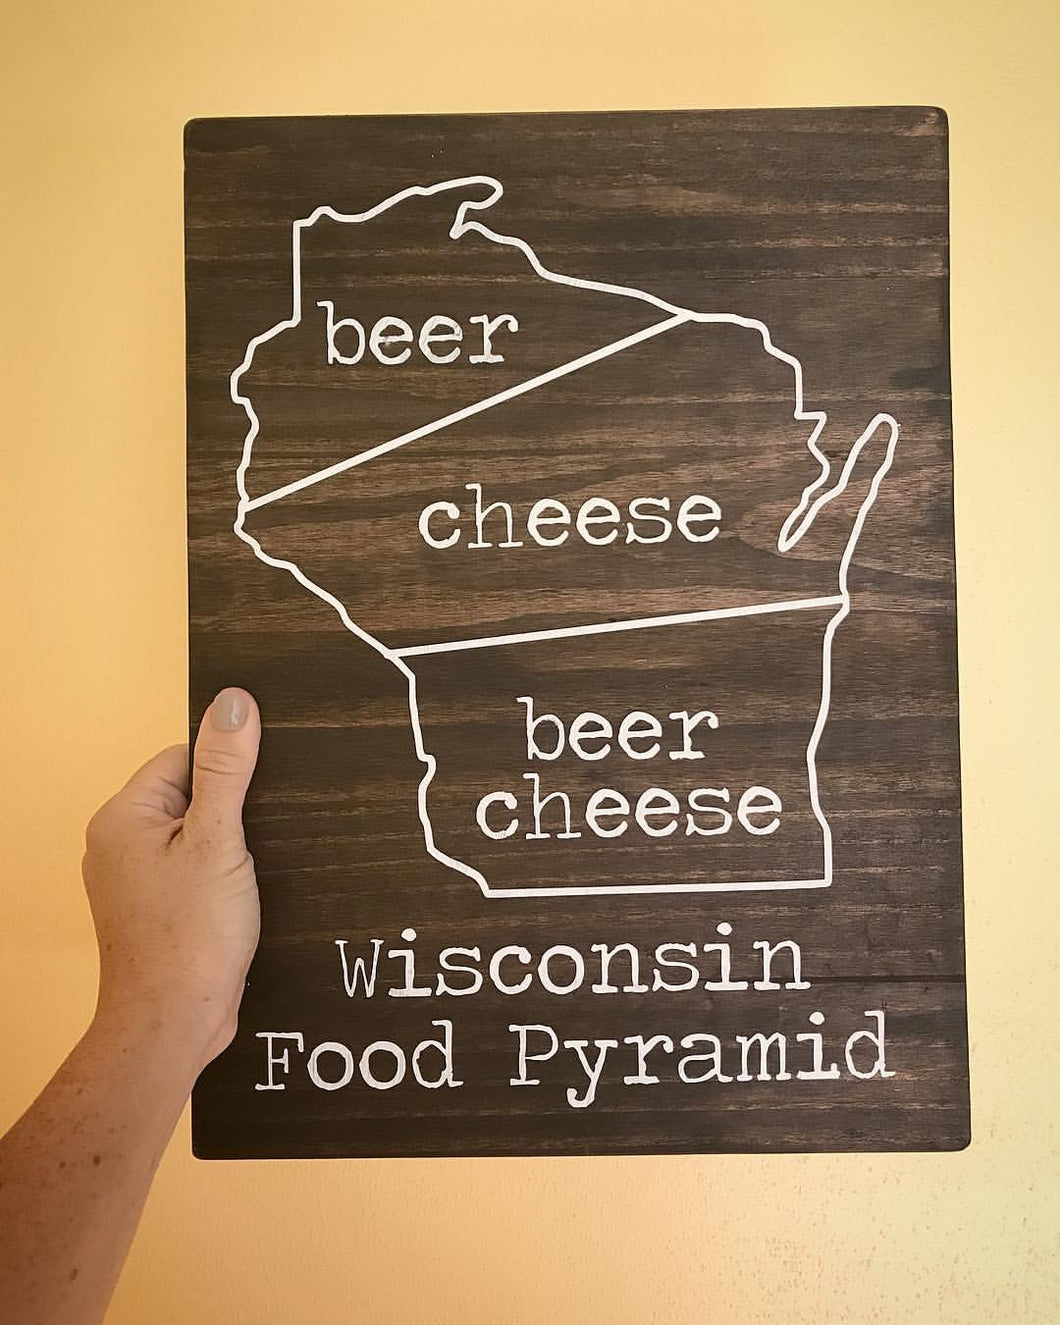 Wisconsin Food Pyramid